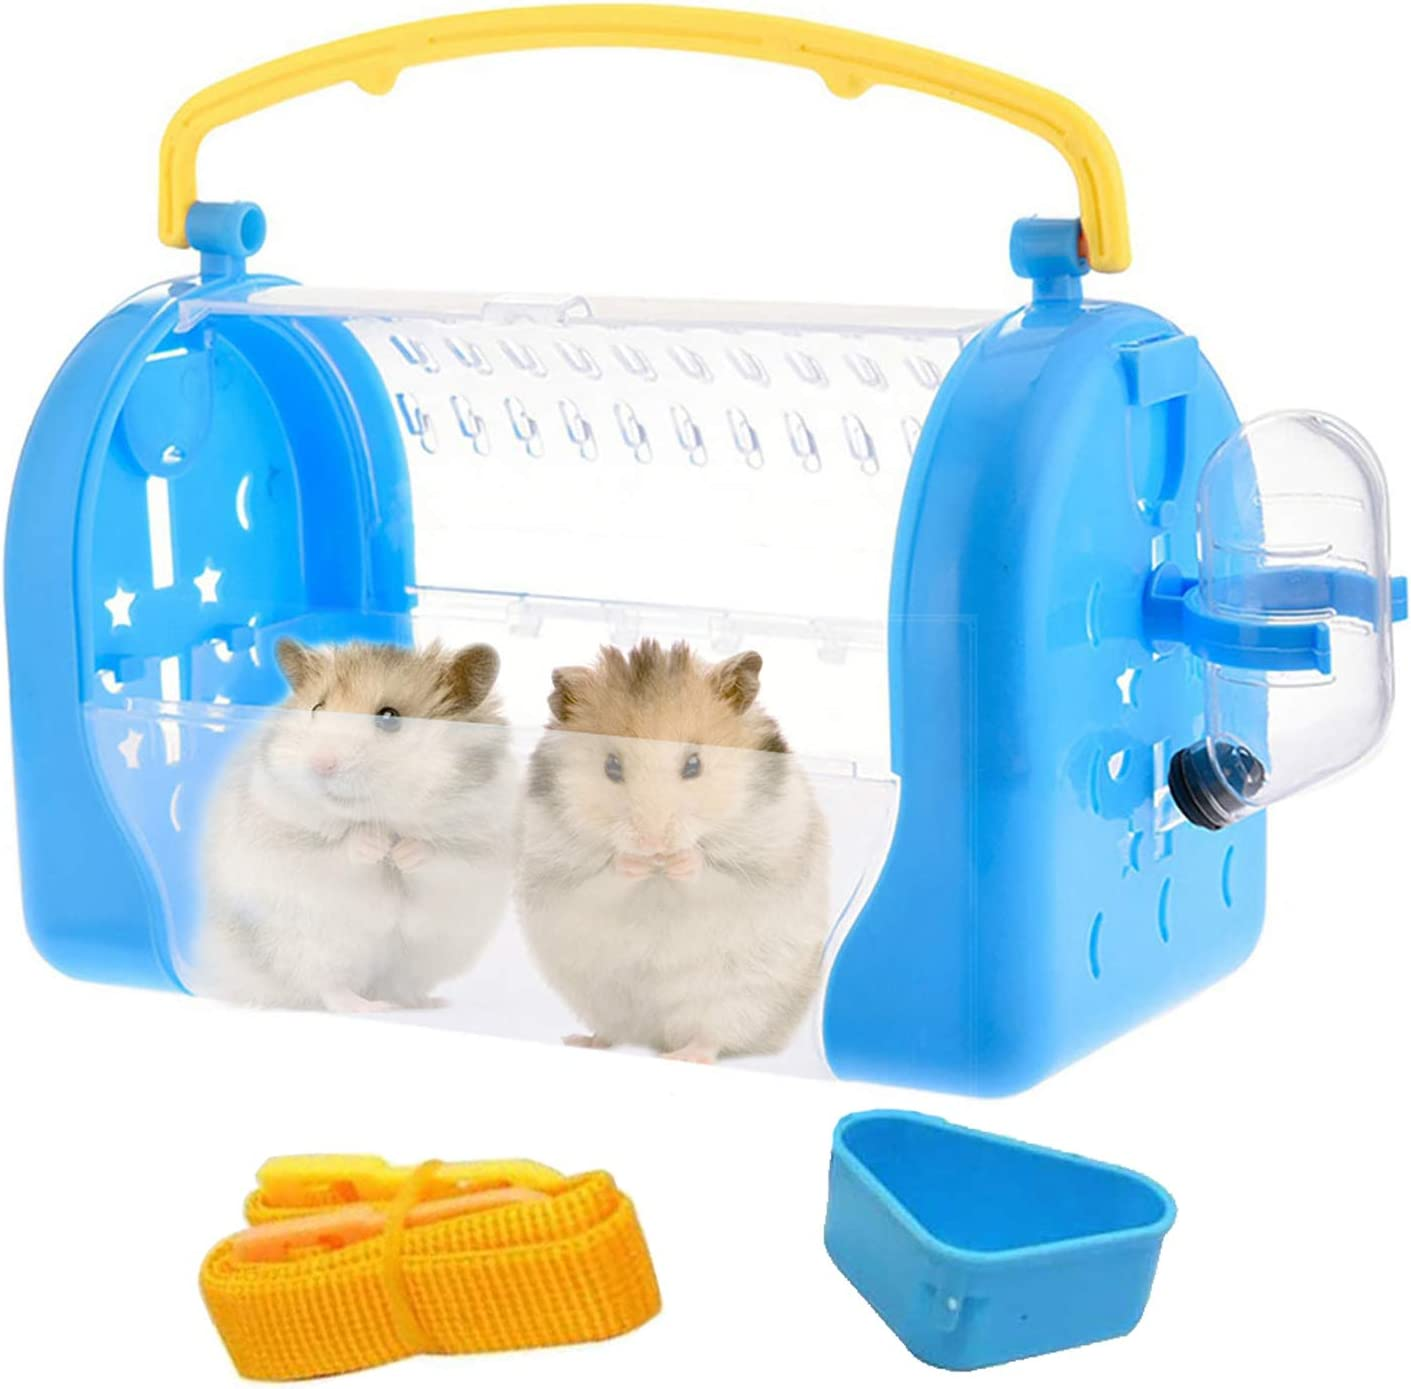 kathson Portable Hamster Cage Mouse Carry Travelwith Water Bottle Food Bowl Nylon Strap Carrier for African Miniature Rabbit Chinchilla Squirrel and Other Small Animals